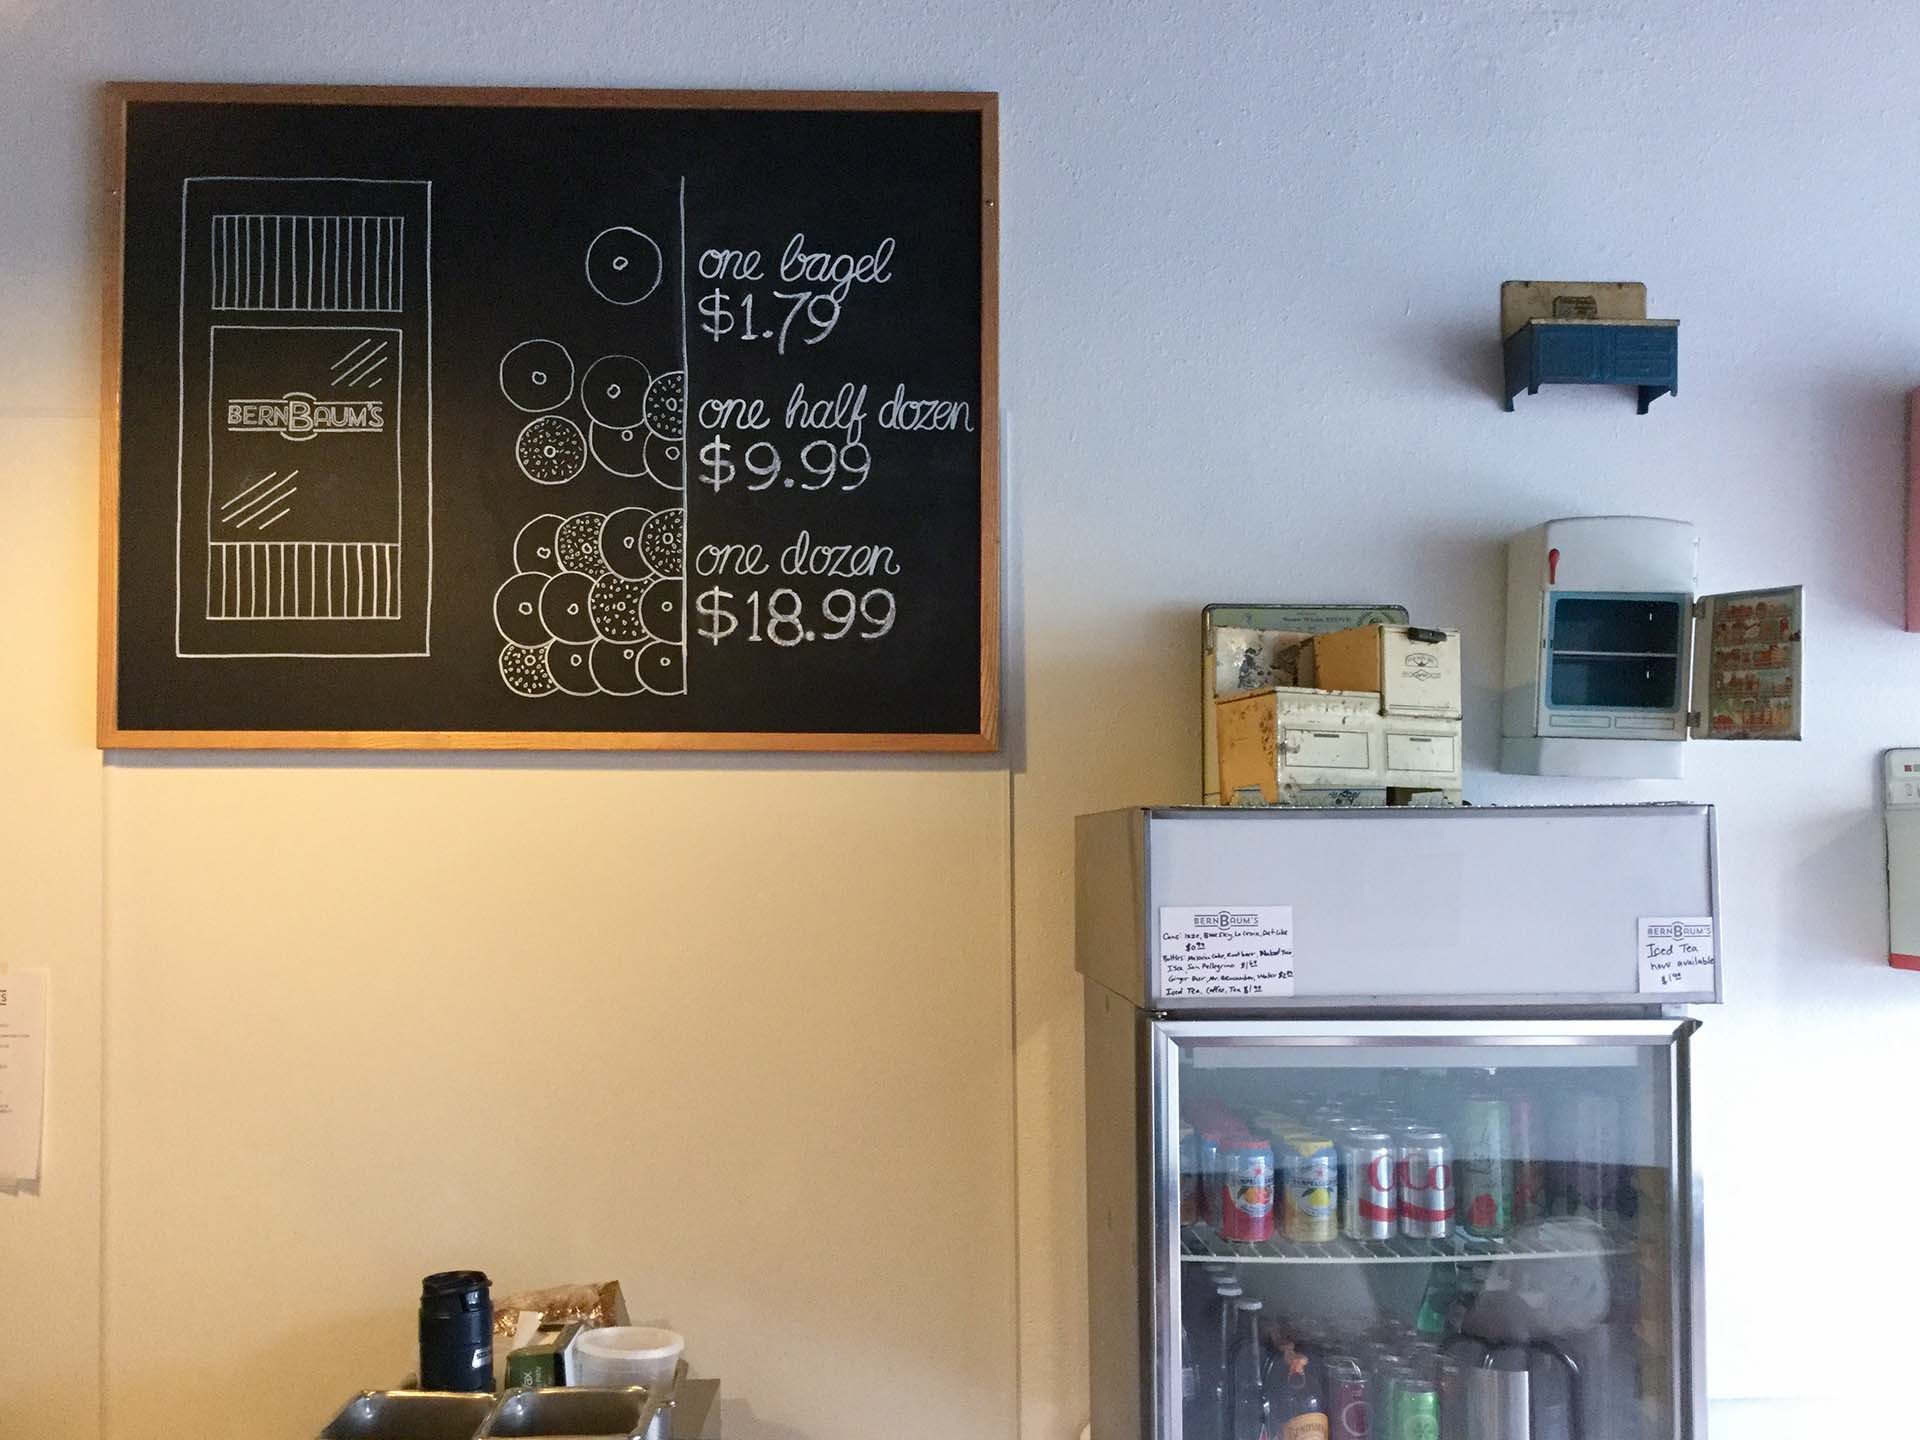 Pricing chalkboard on display in BernBaum's near refrigerator